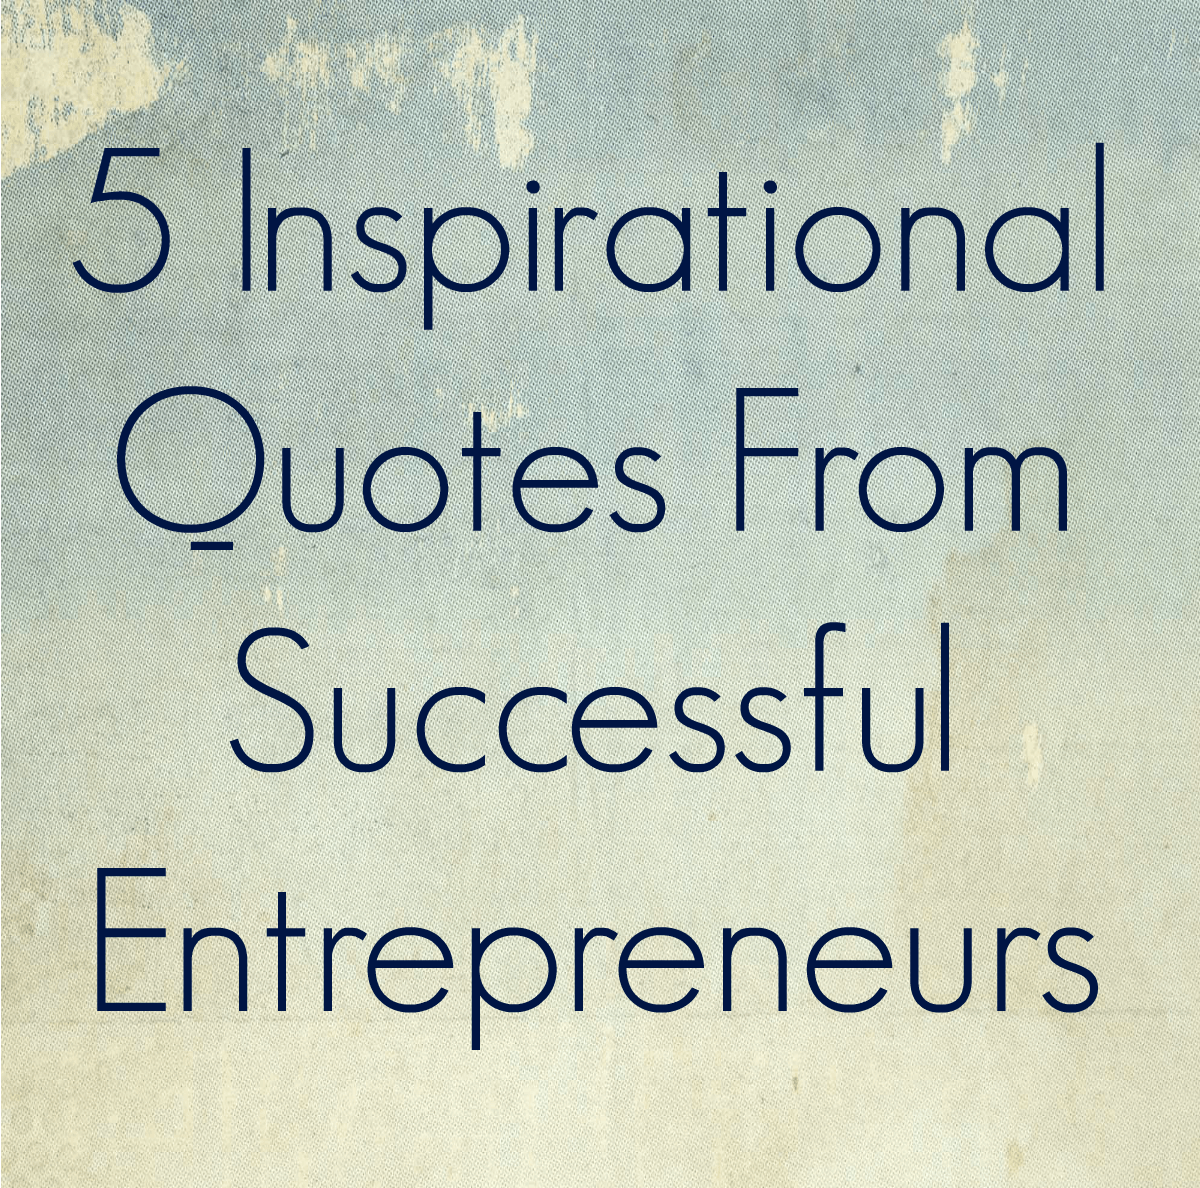 Throwing In The Towel Quotes 5 Inspirational Quotes From Successful Entrepreneurs  Thinking